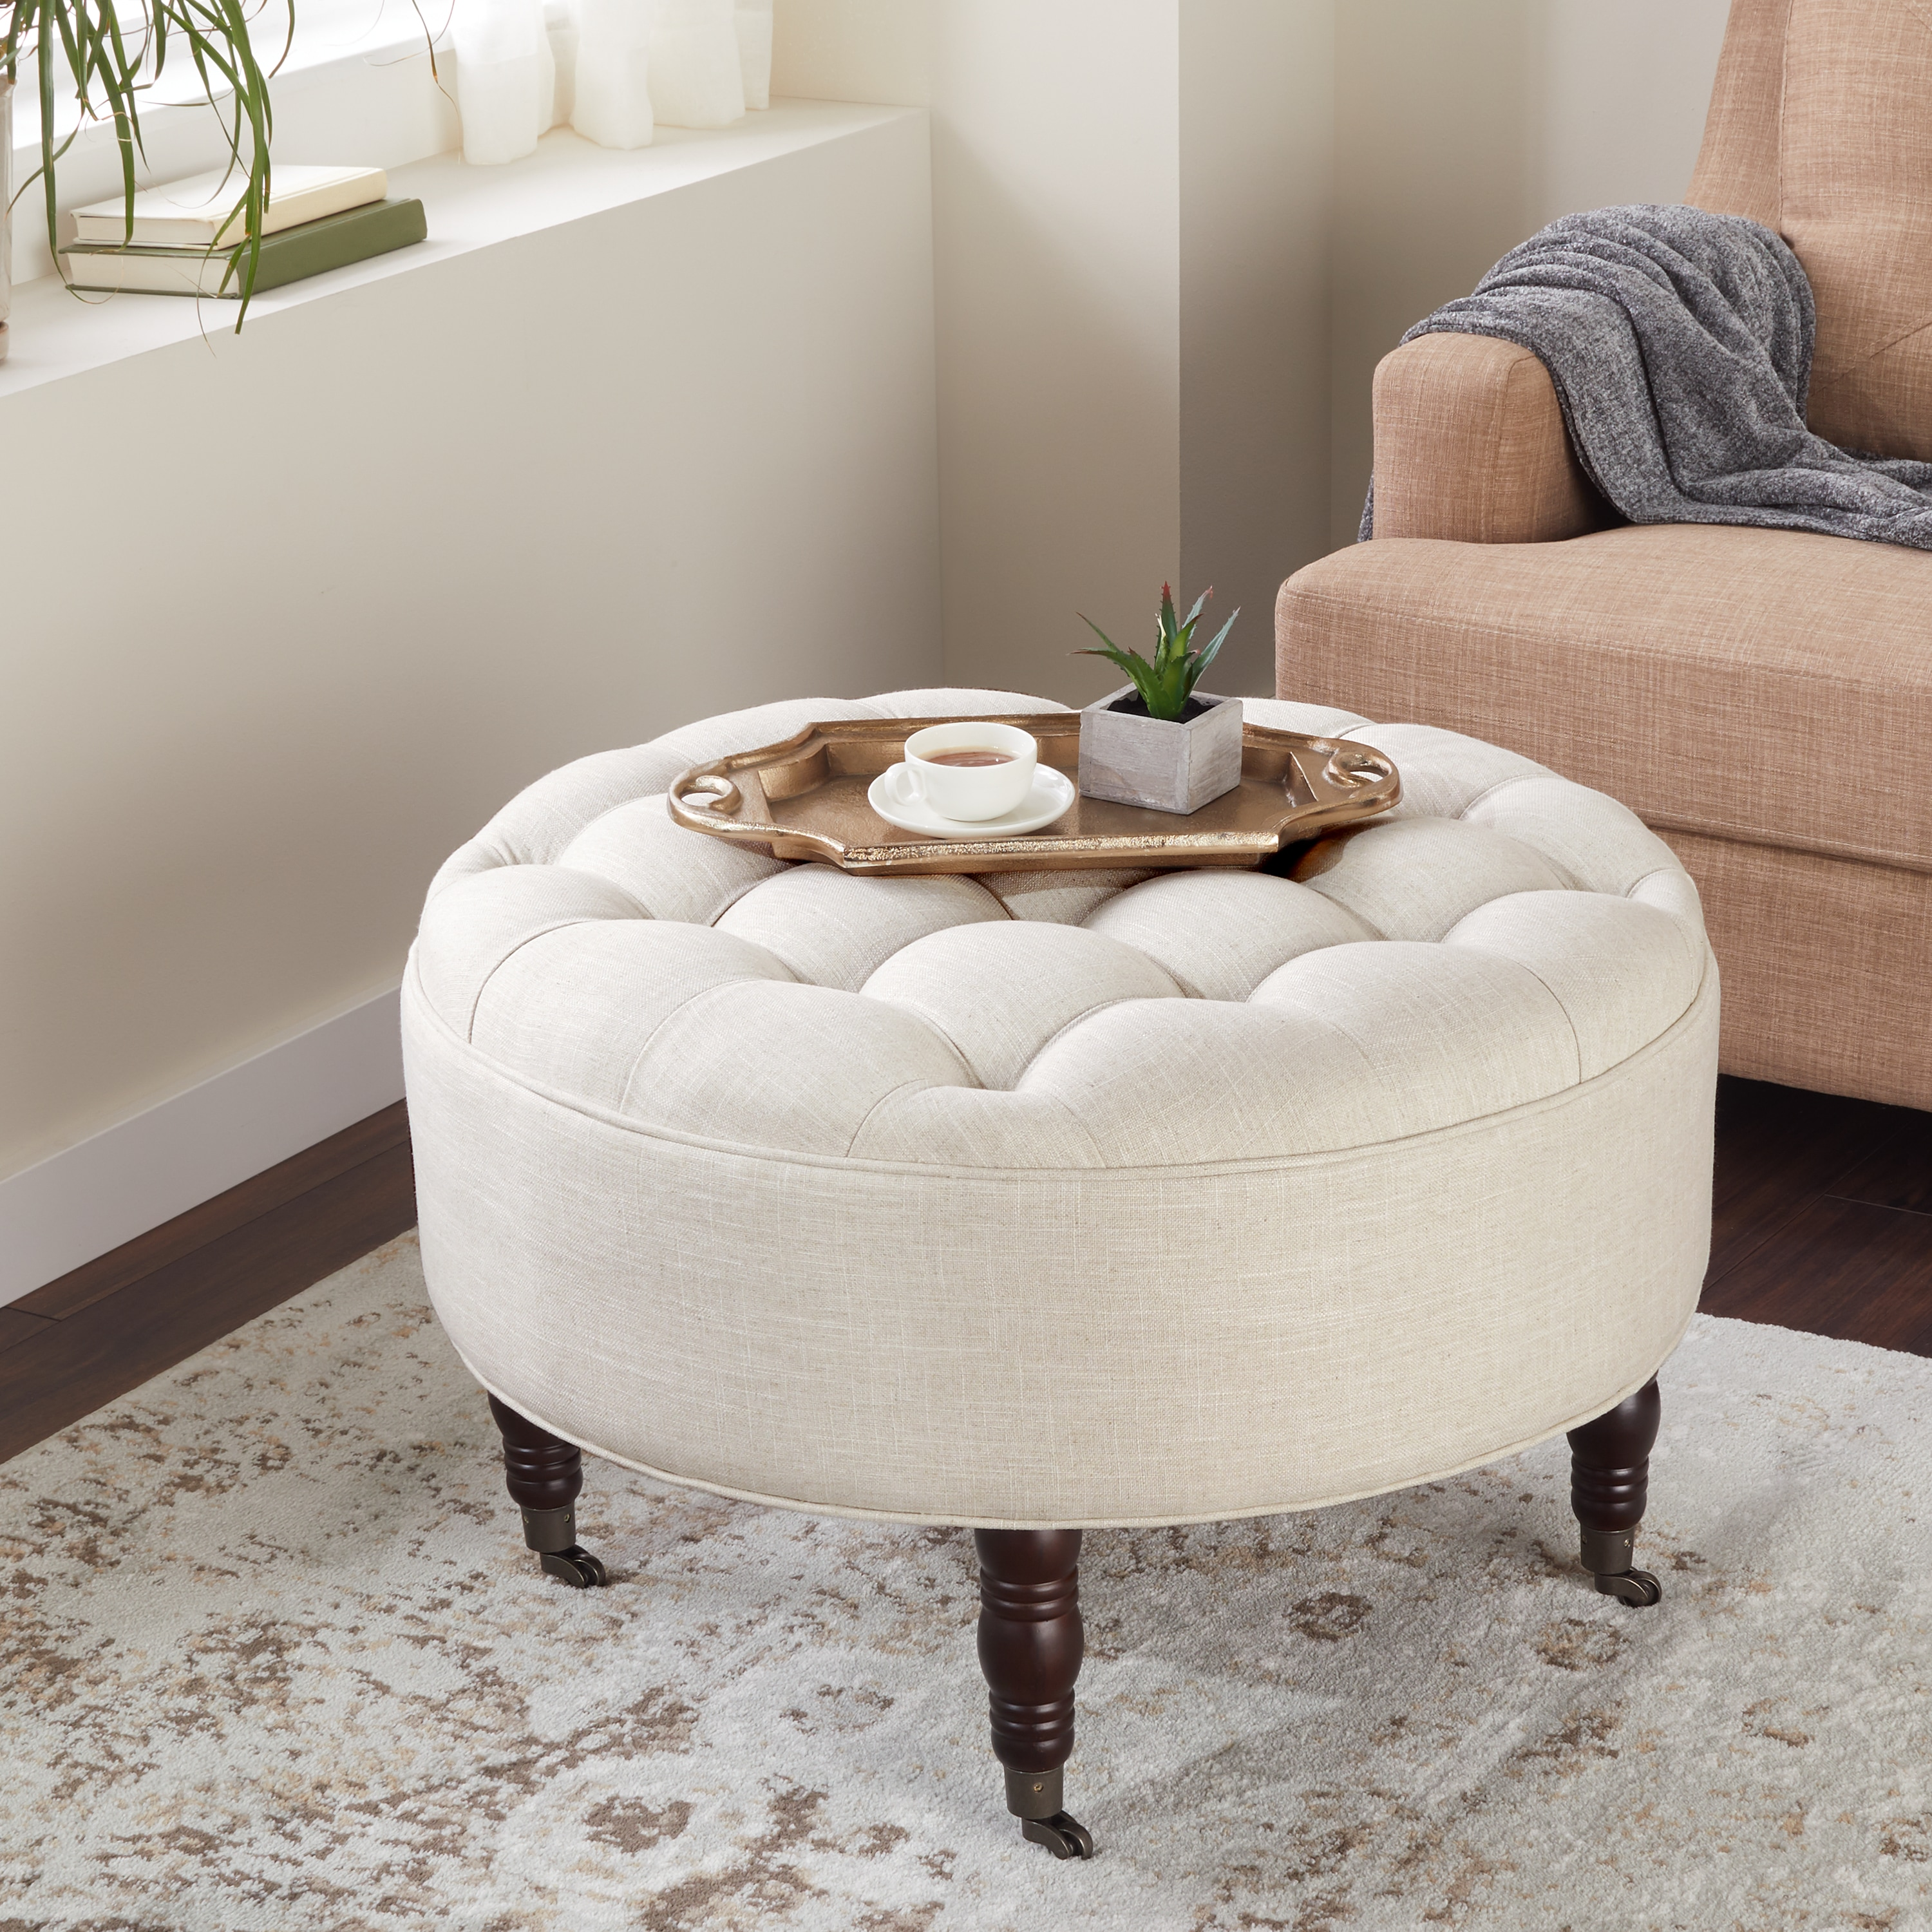 Awe Inspiring Abbyson Clarence Tufted Round Ottoman Squirreltailoven Fun Painted Chair Ideas Images Squirreltailovenorg